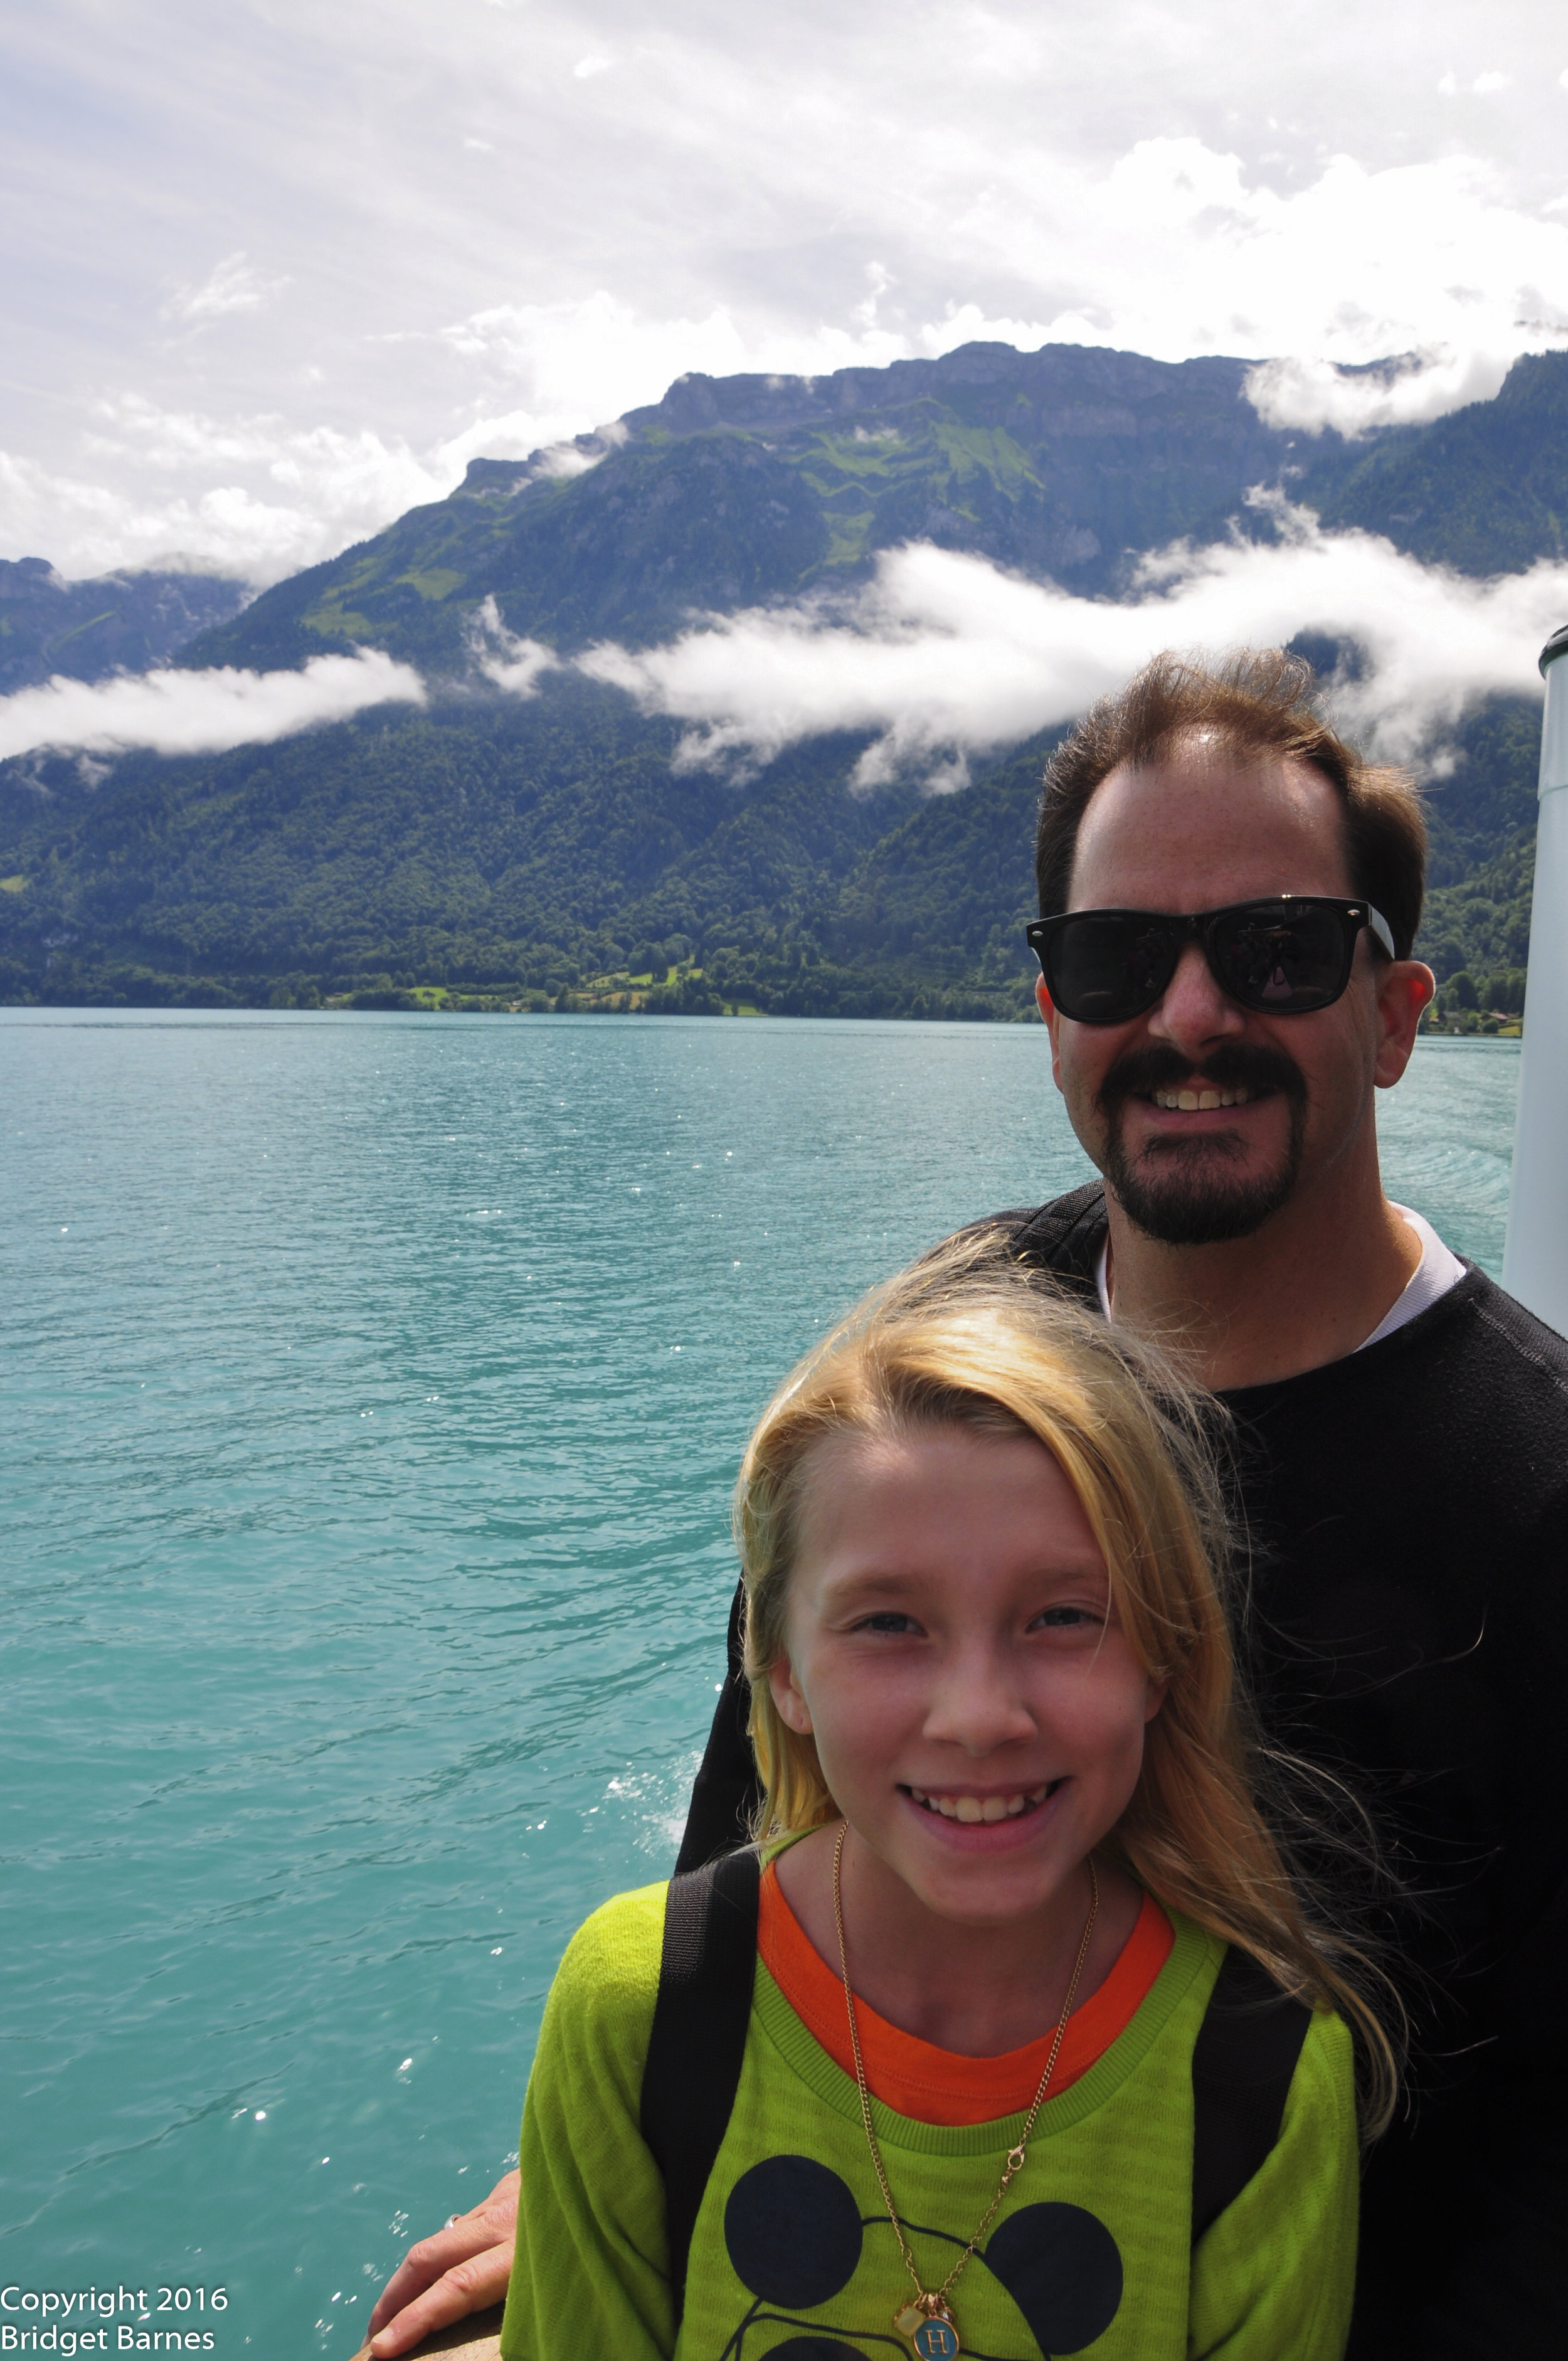 The Girl and the Man on Lake Brienz